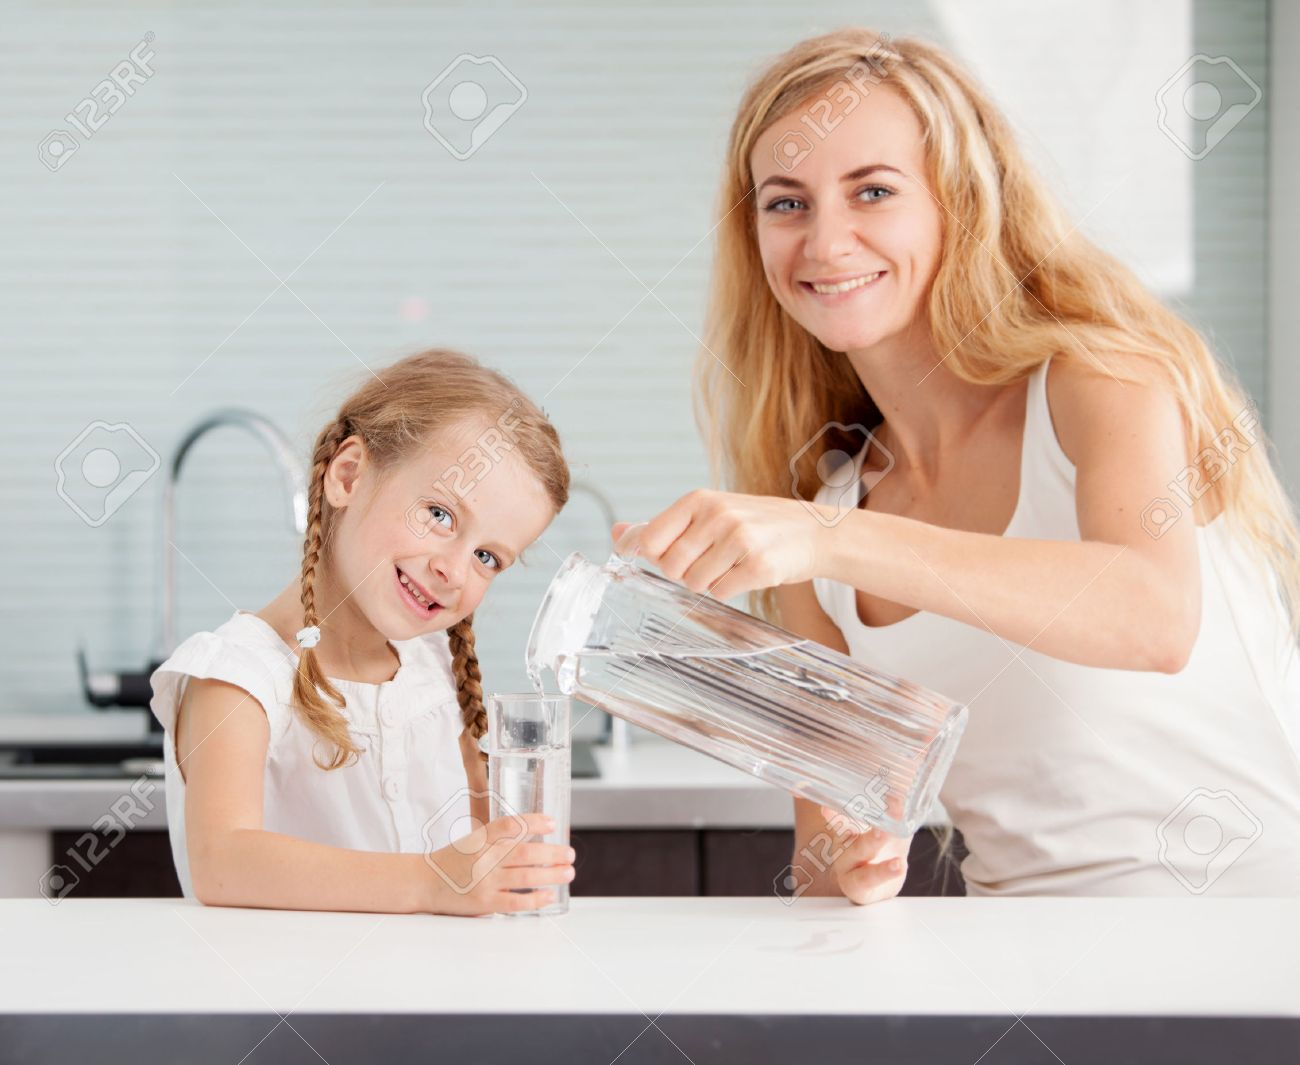 Home Drinking Water Child With Mother Drinking Water From Glass Happy Family At